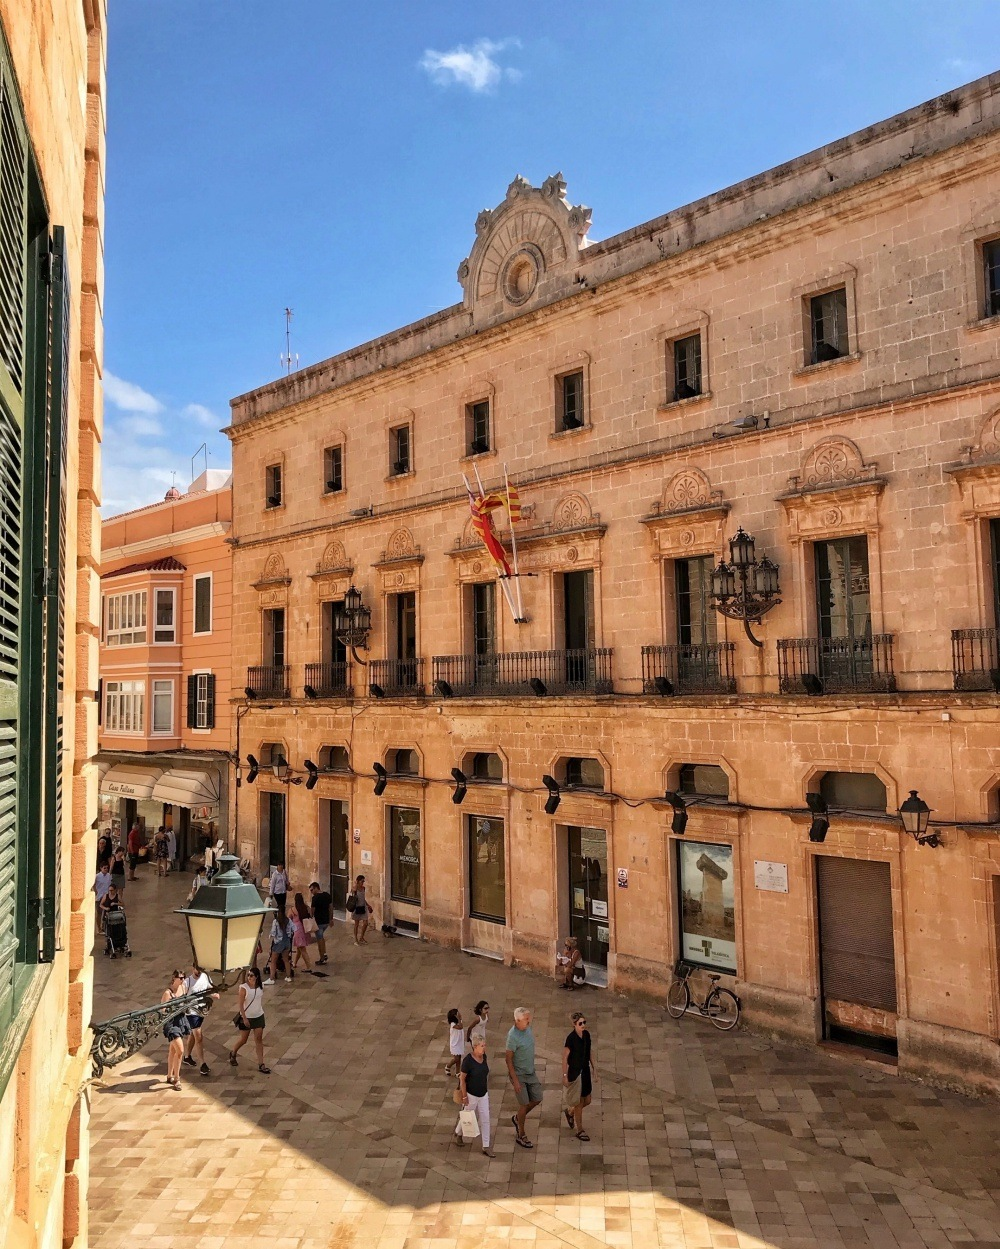 Town Hall Ciutadella Menorca Photo Heatheronhertravels.com